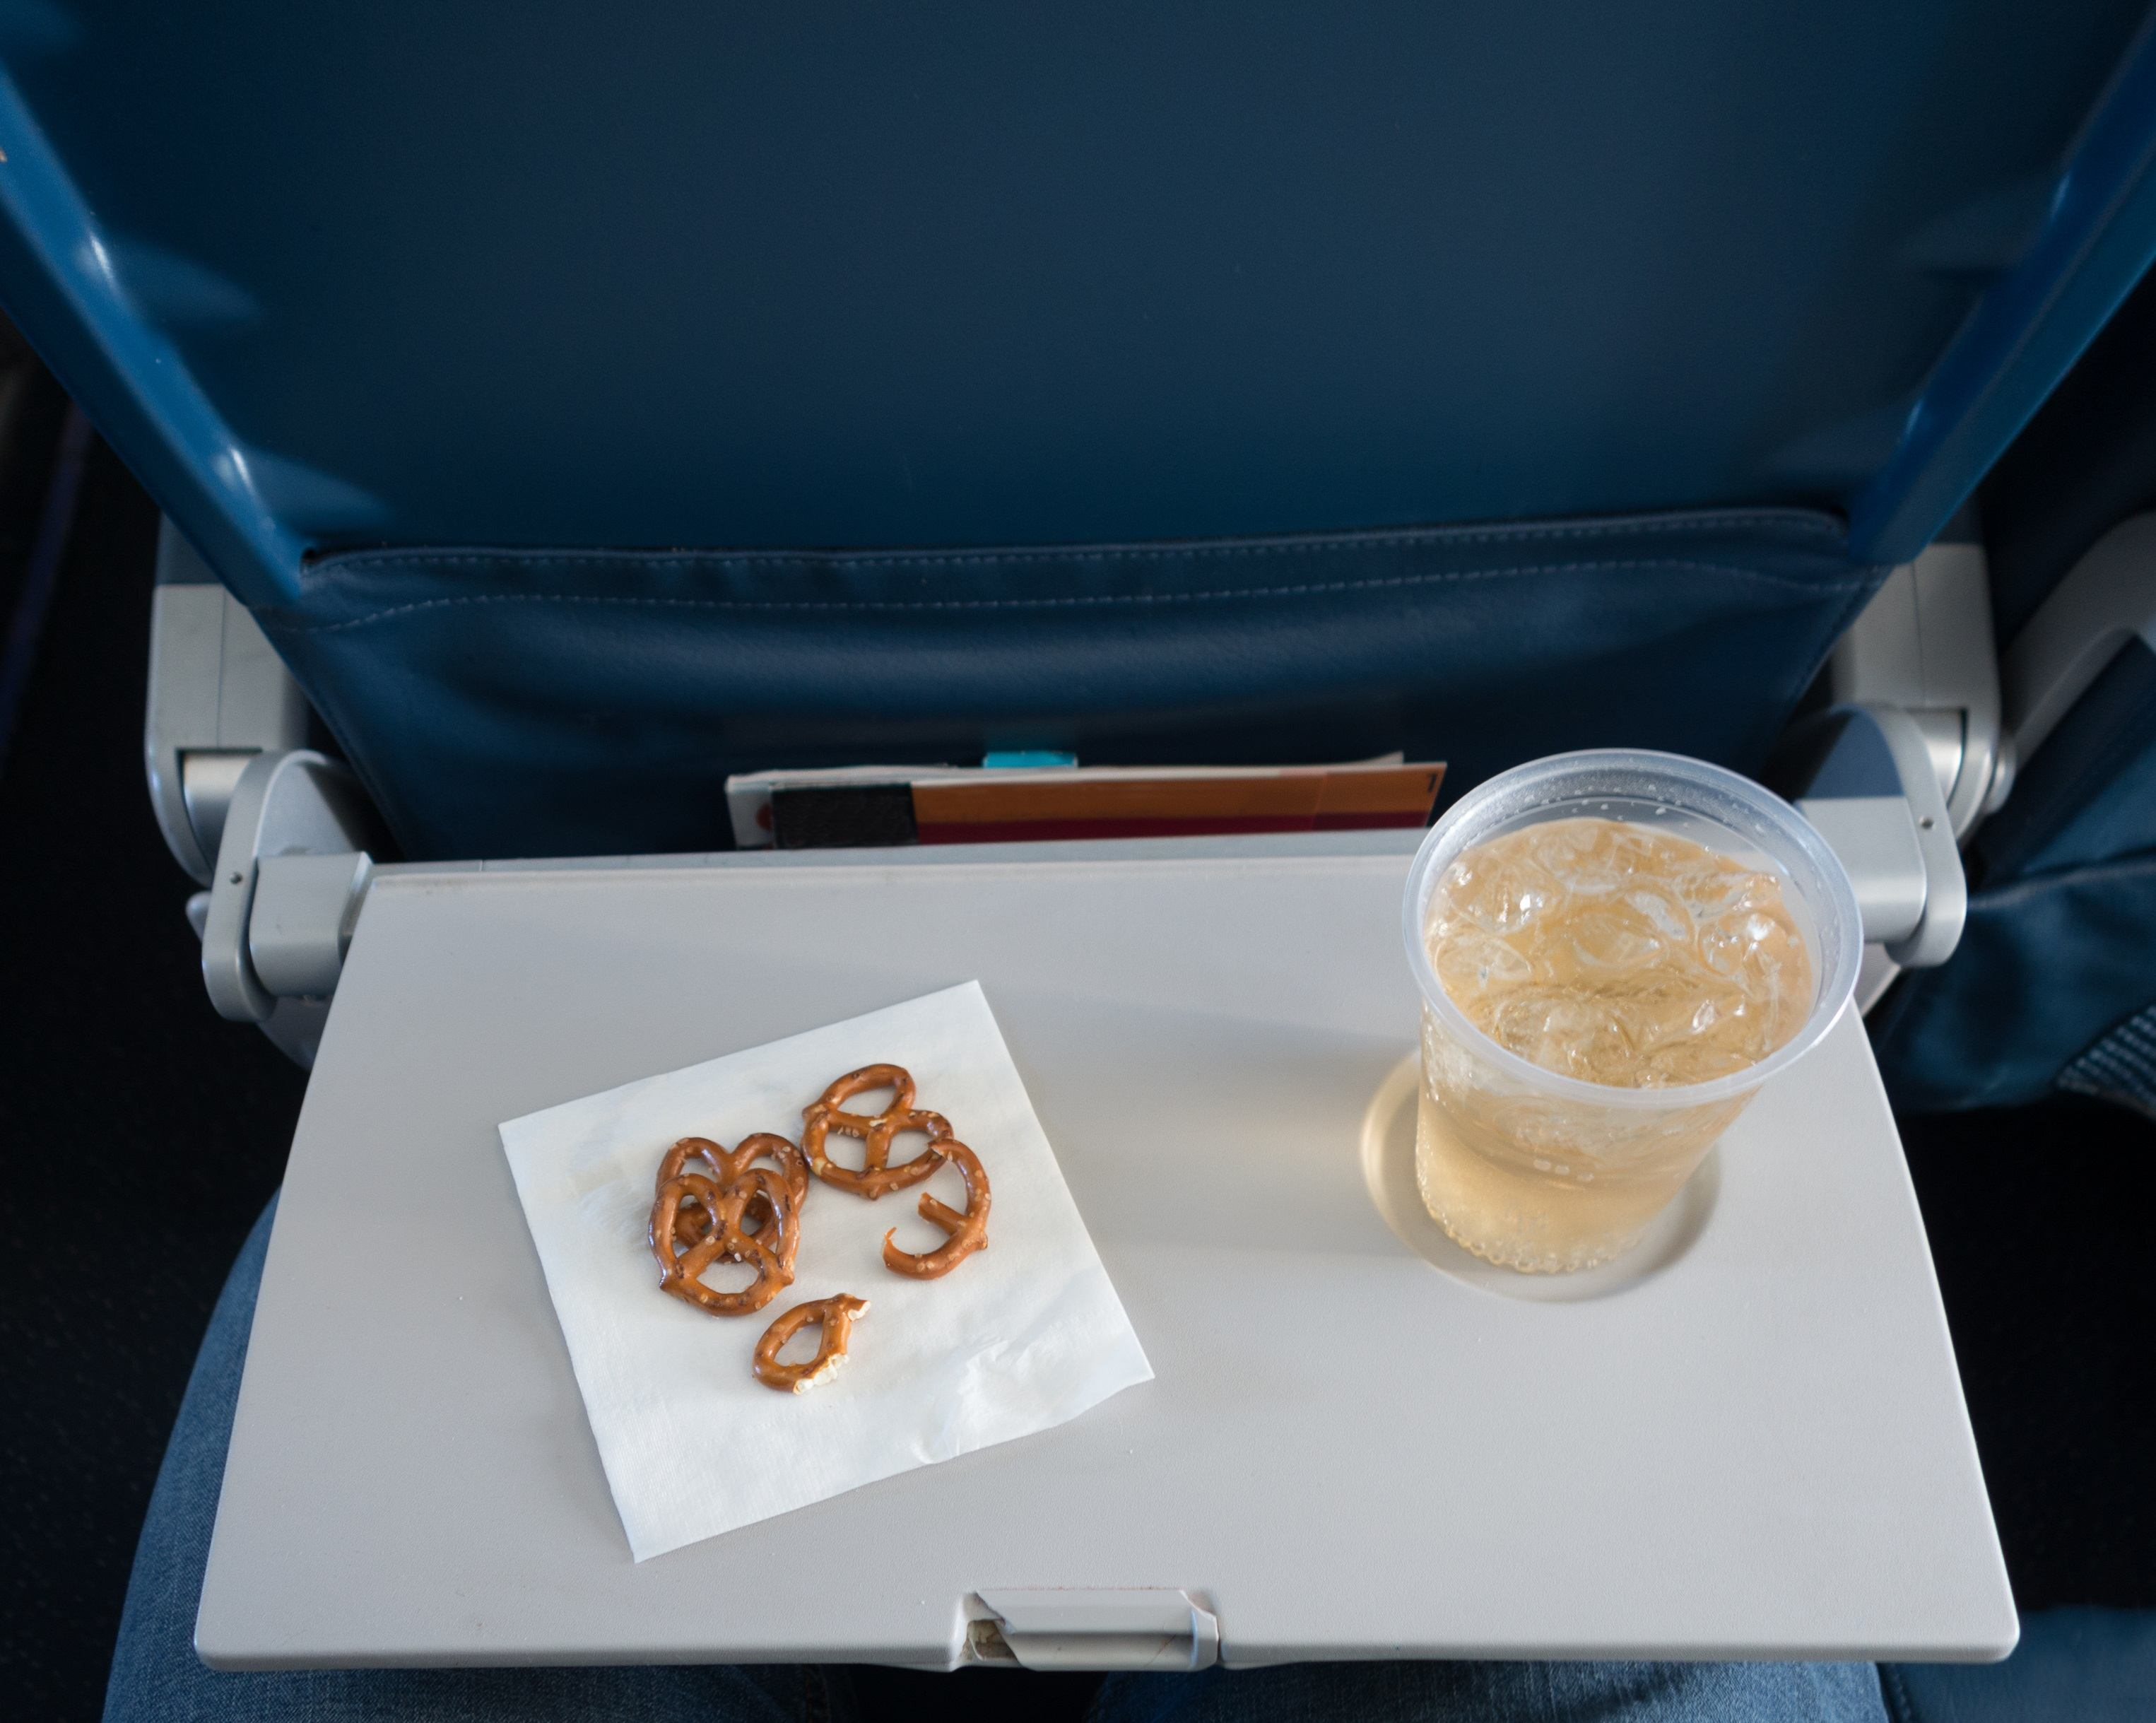 Tray table with pretzels and beverage